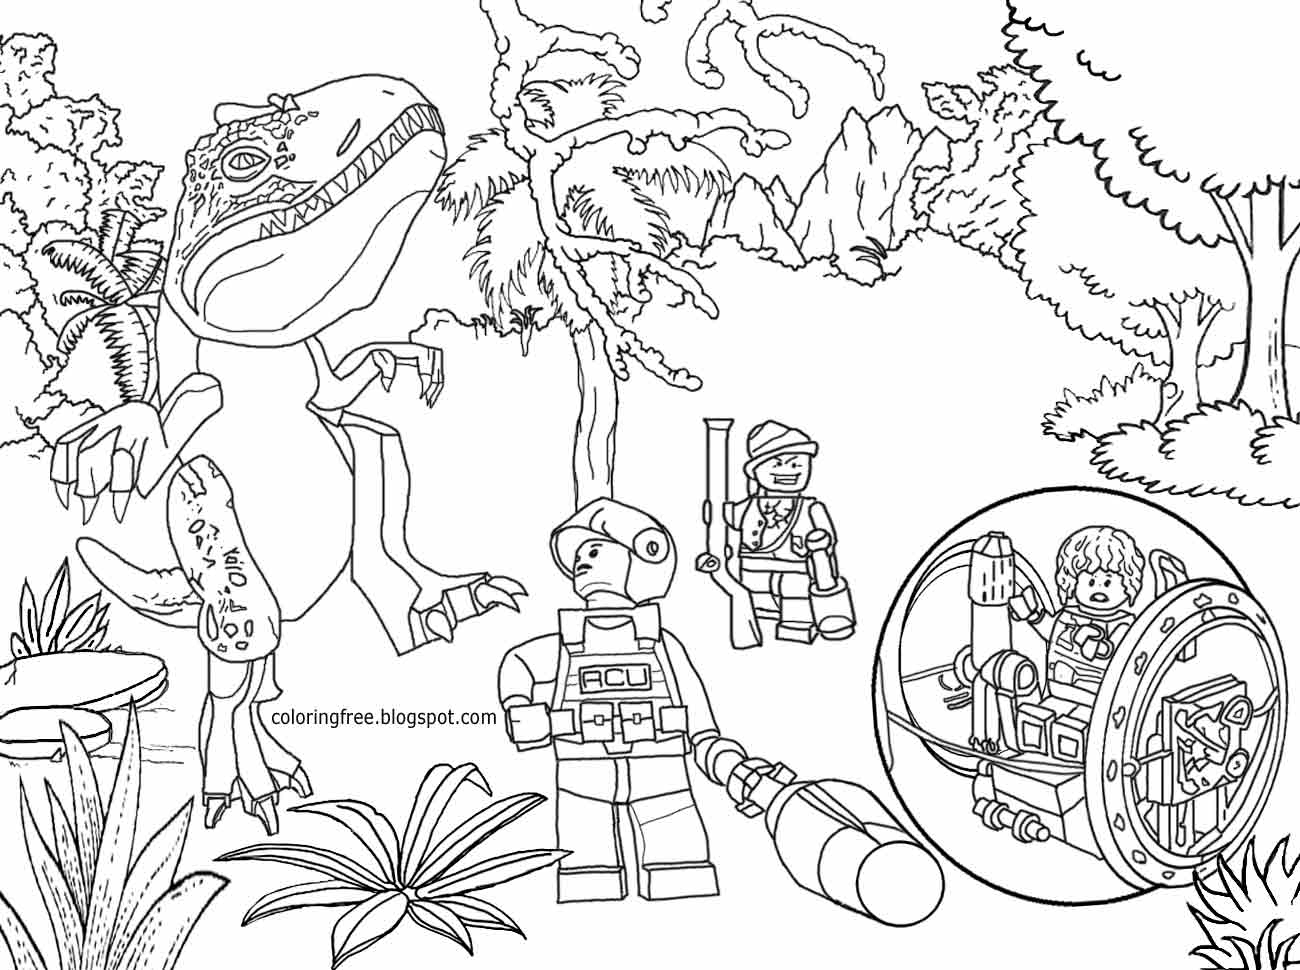 1300x970 Jurassic Park Coloring Pages Jurassic World Coloring Pages